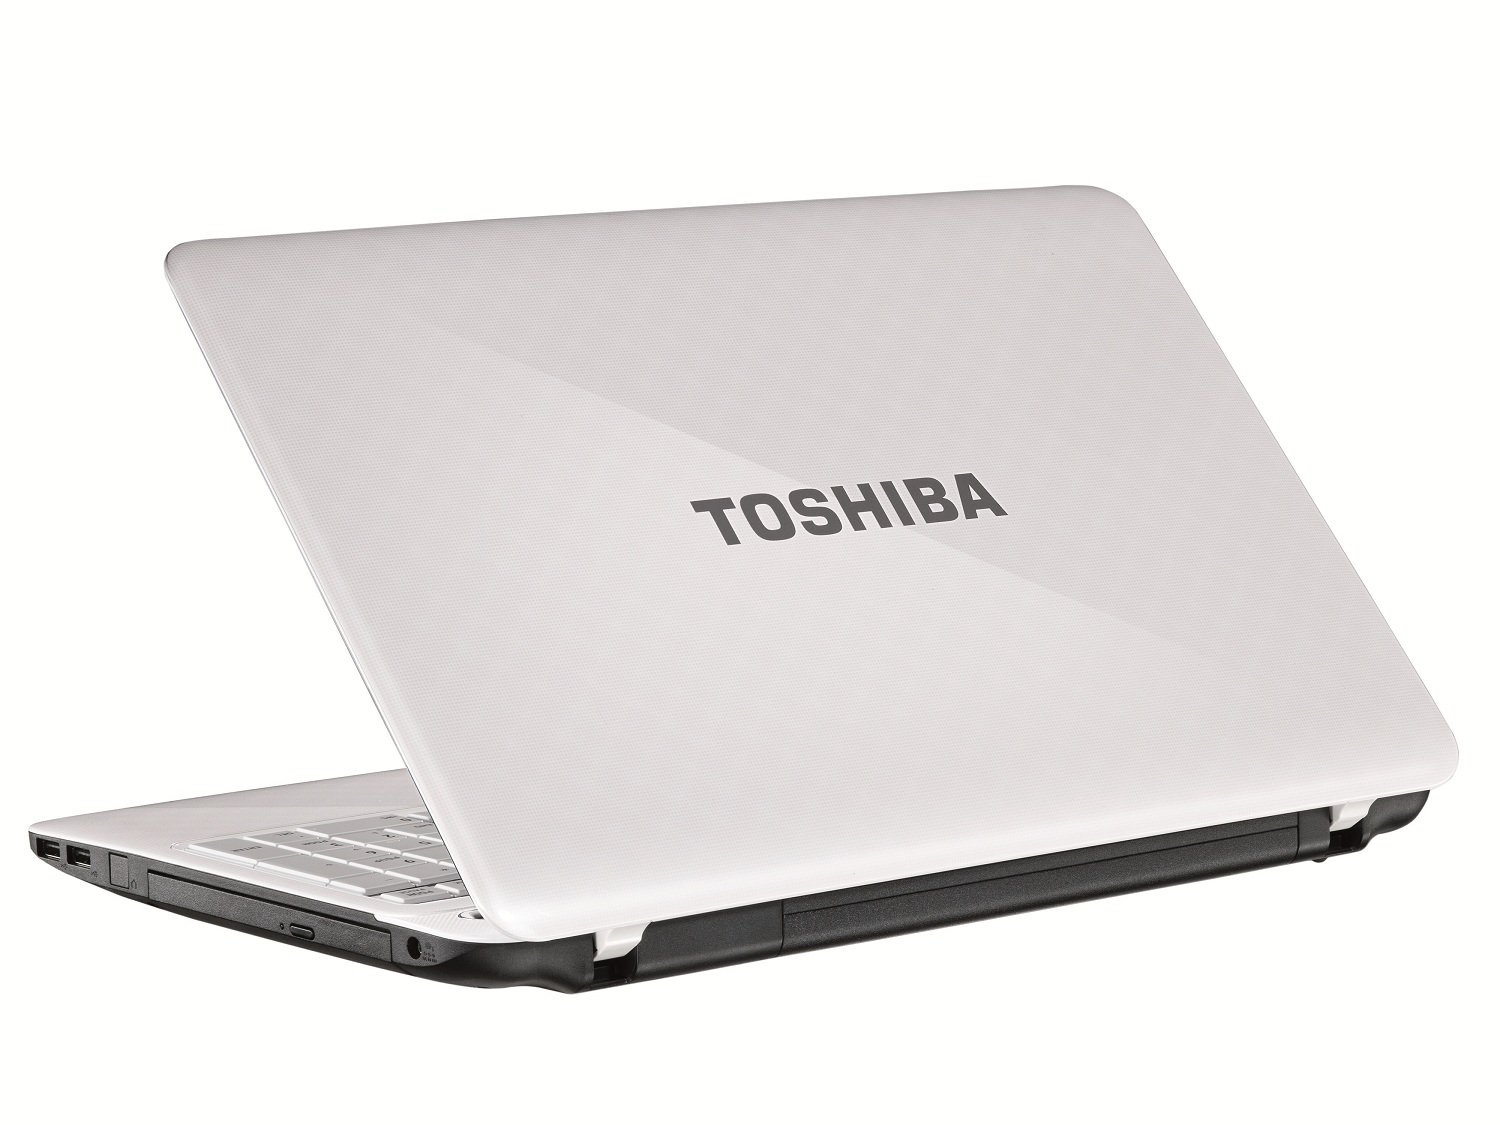 toshiba satellite l750d 18g 39 6 cm notebook. Black Bedroom Furniture Sets. Home Design Ideas